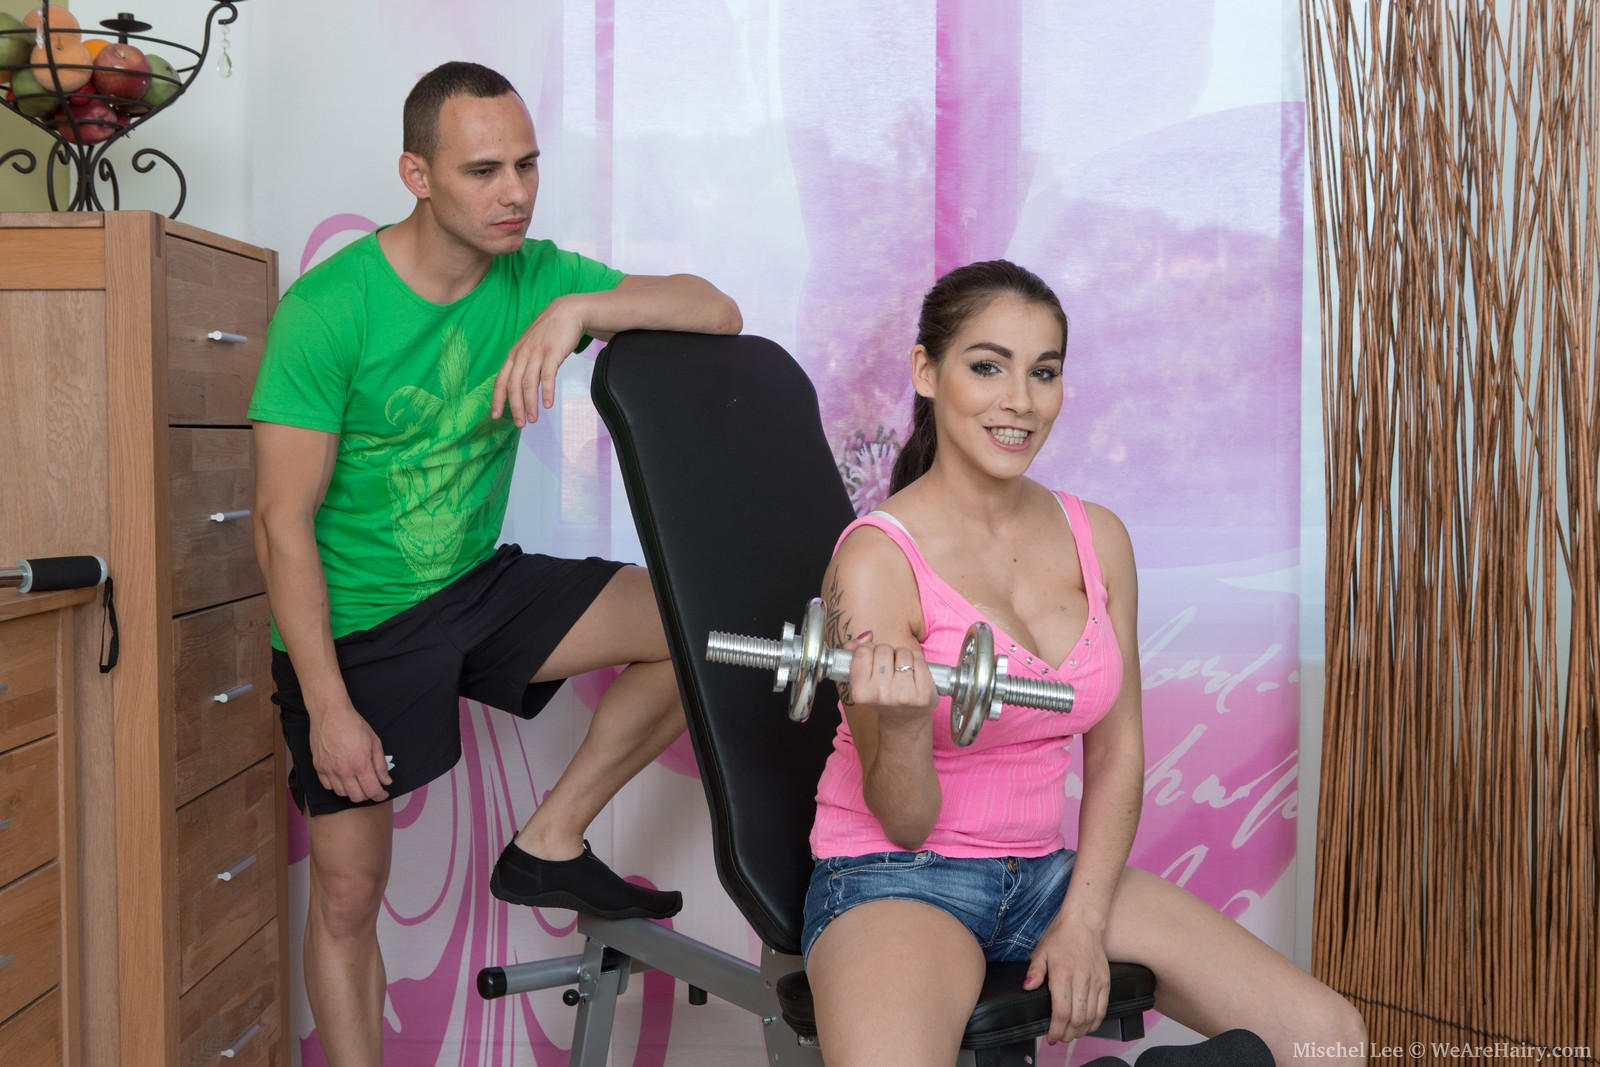 Gym fun leads to intense sex with Mischel Lee